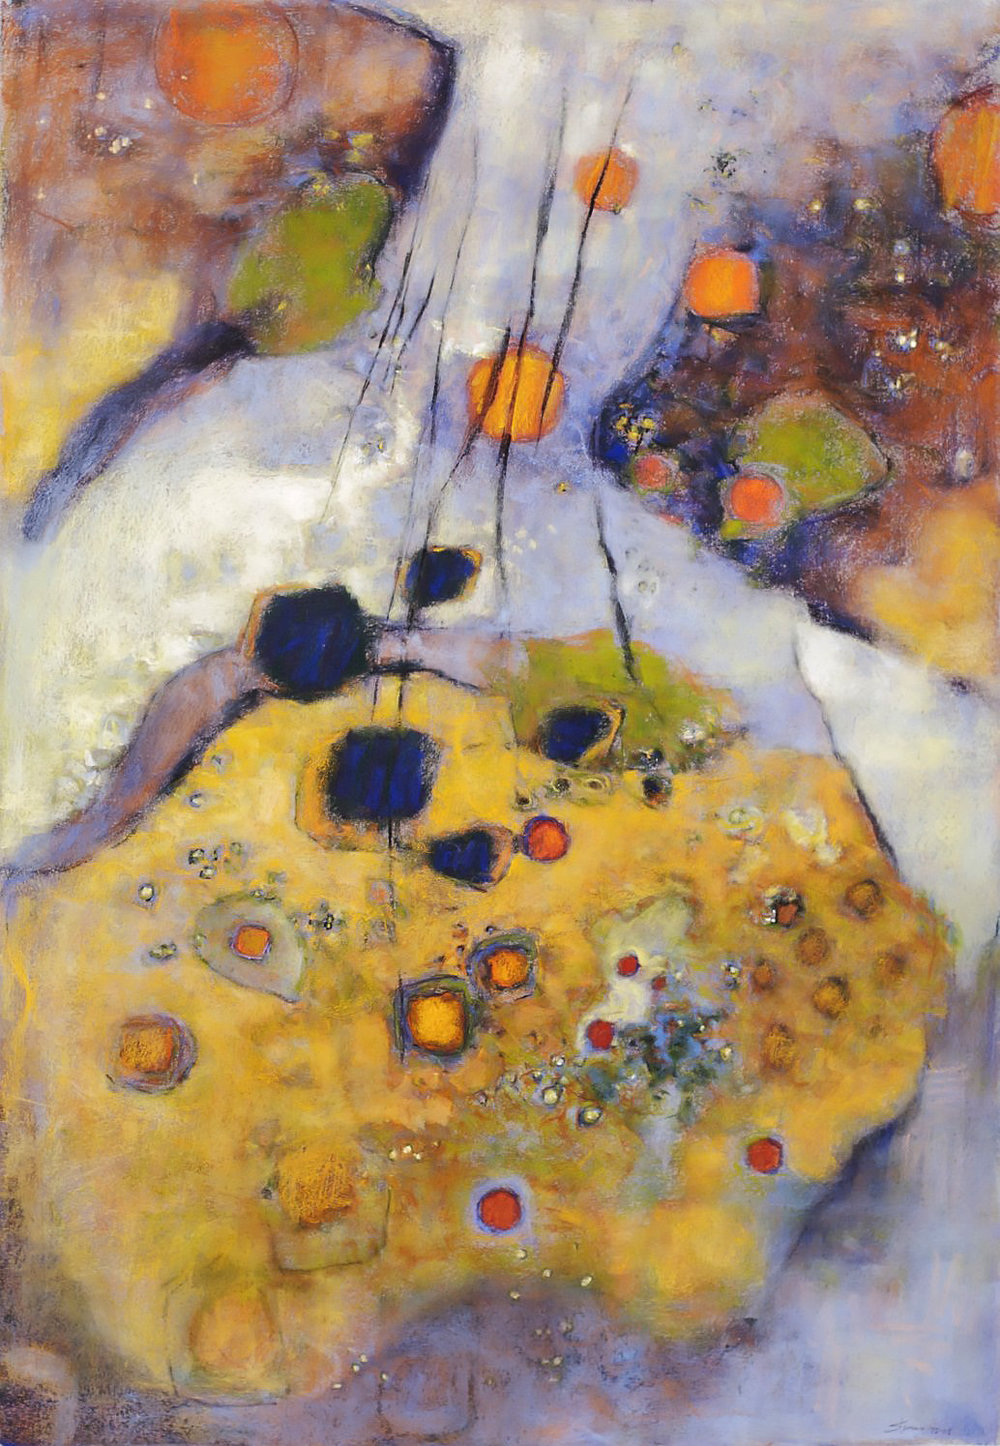 Earthsong | pastel on paper | 44 x 30"